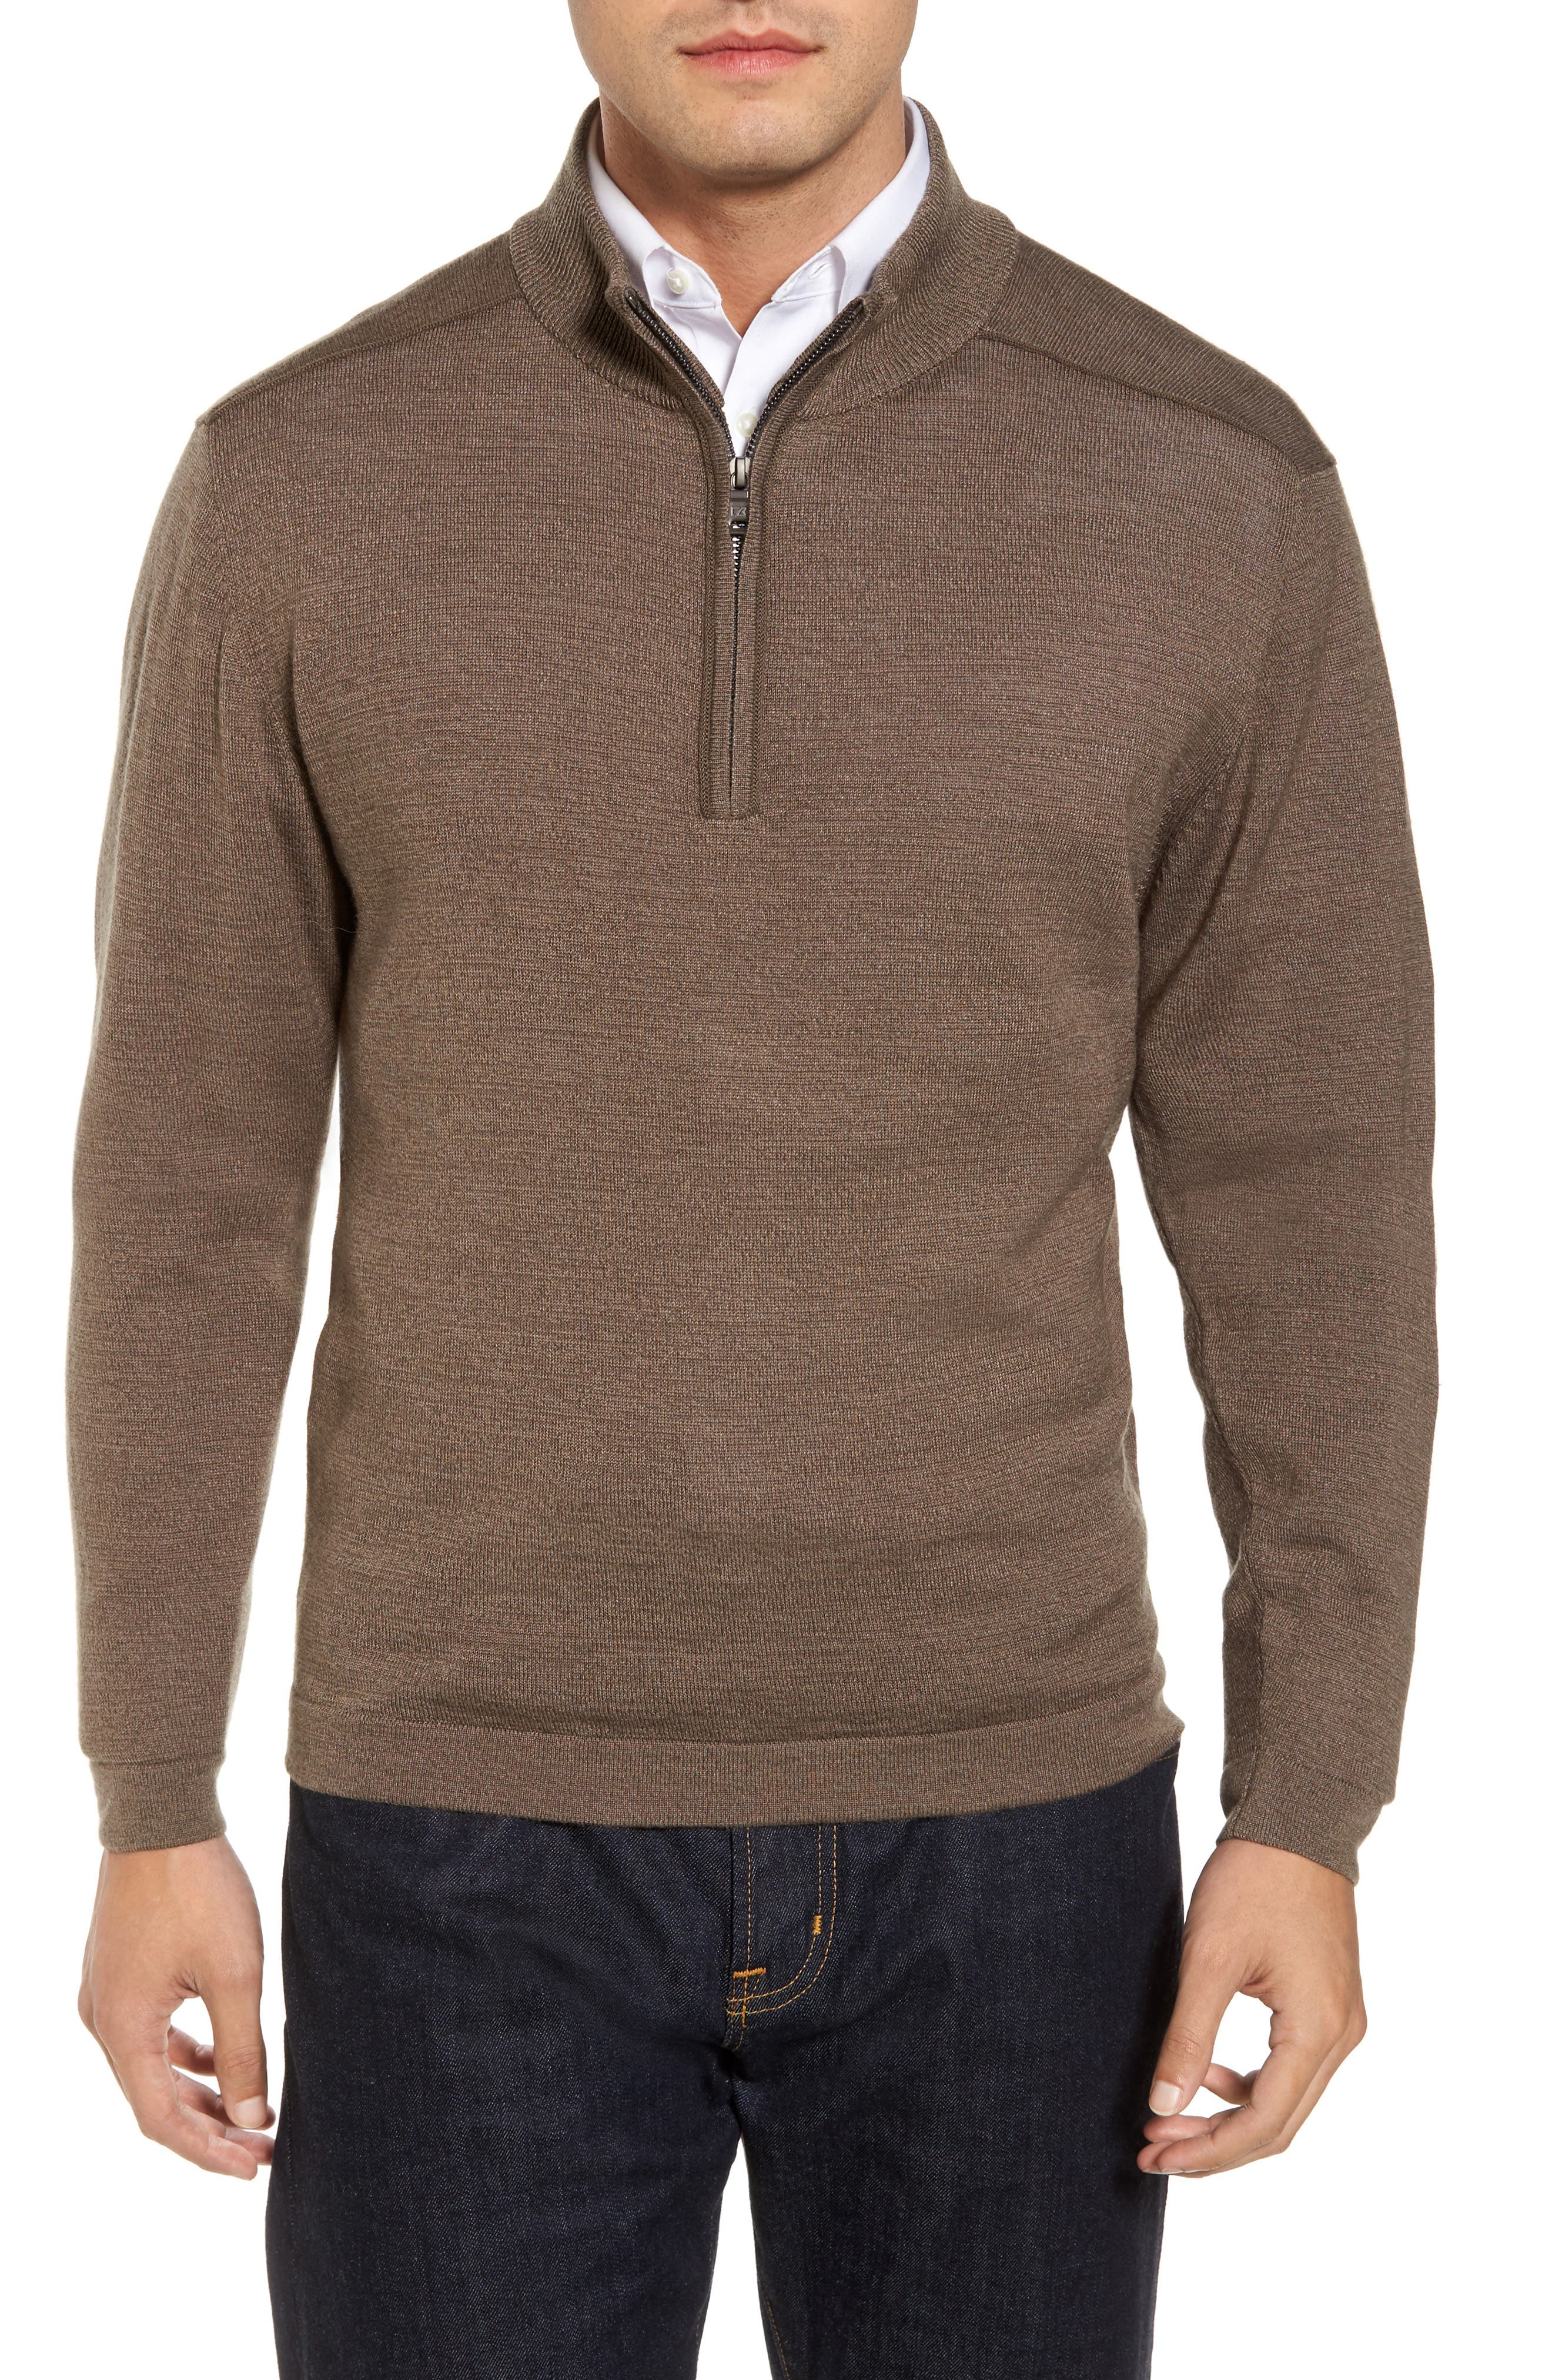 Alternate Image 1 Selected - Cutter & Buck Henry Quarter-Zip Pullover Sweater